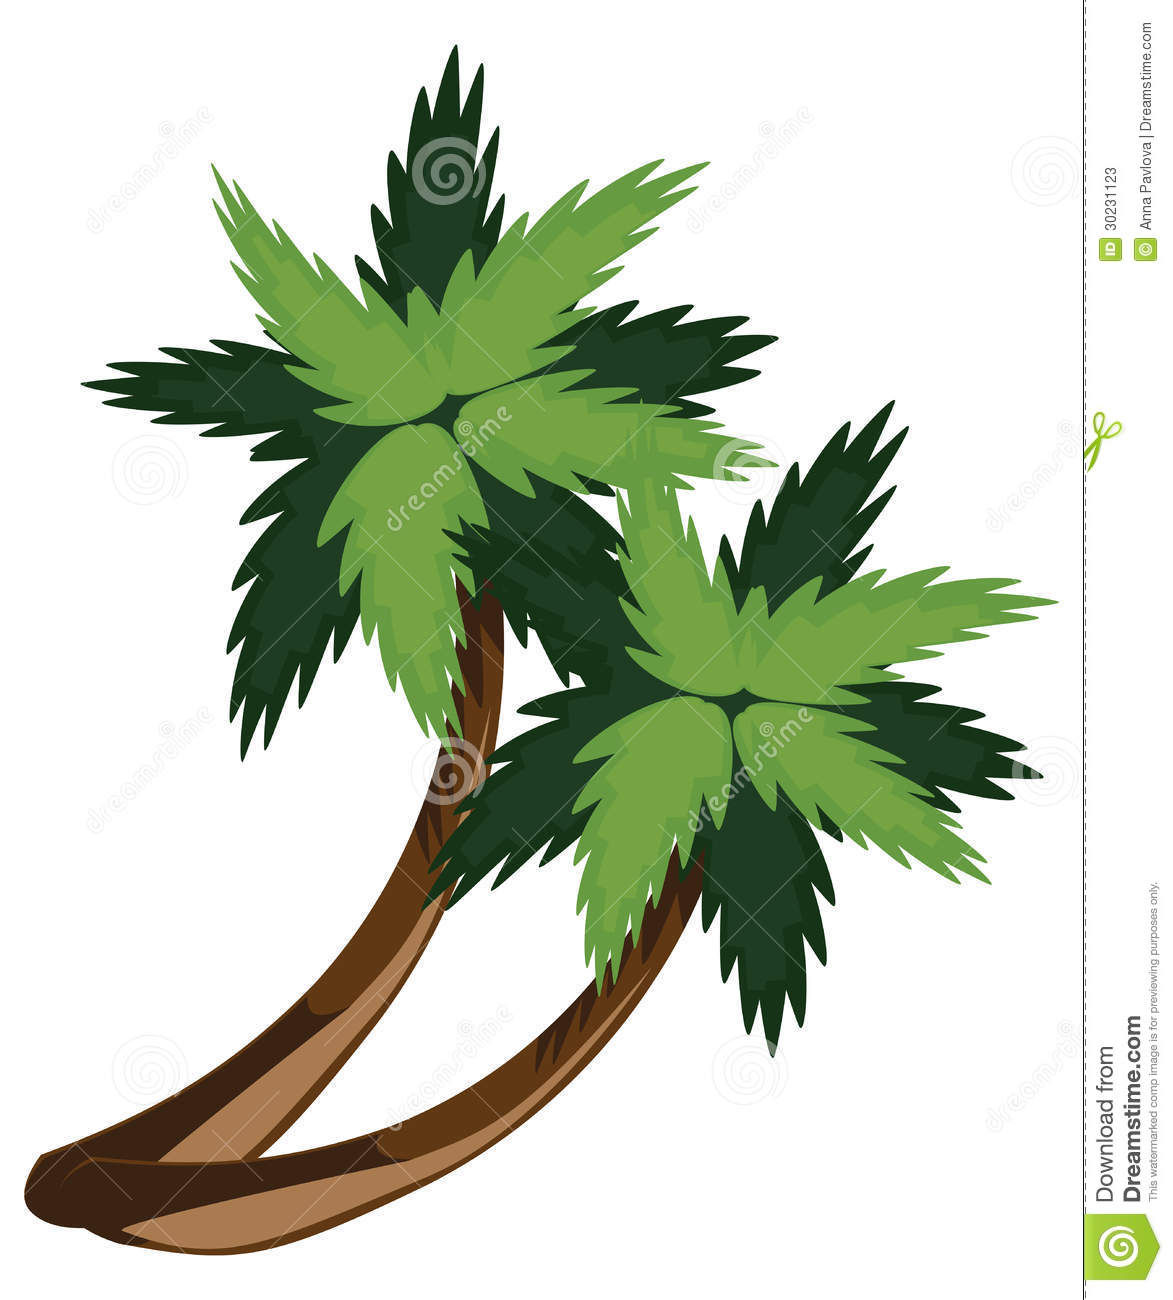 Two Cartoon Palms Stock Photos - Image: 30231123 - photo#45